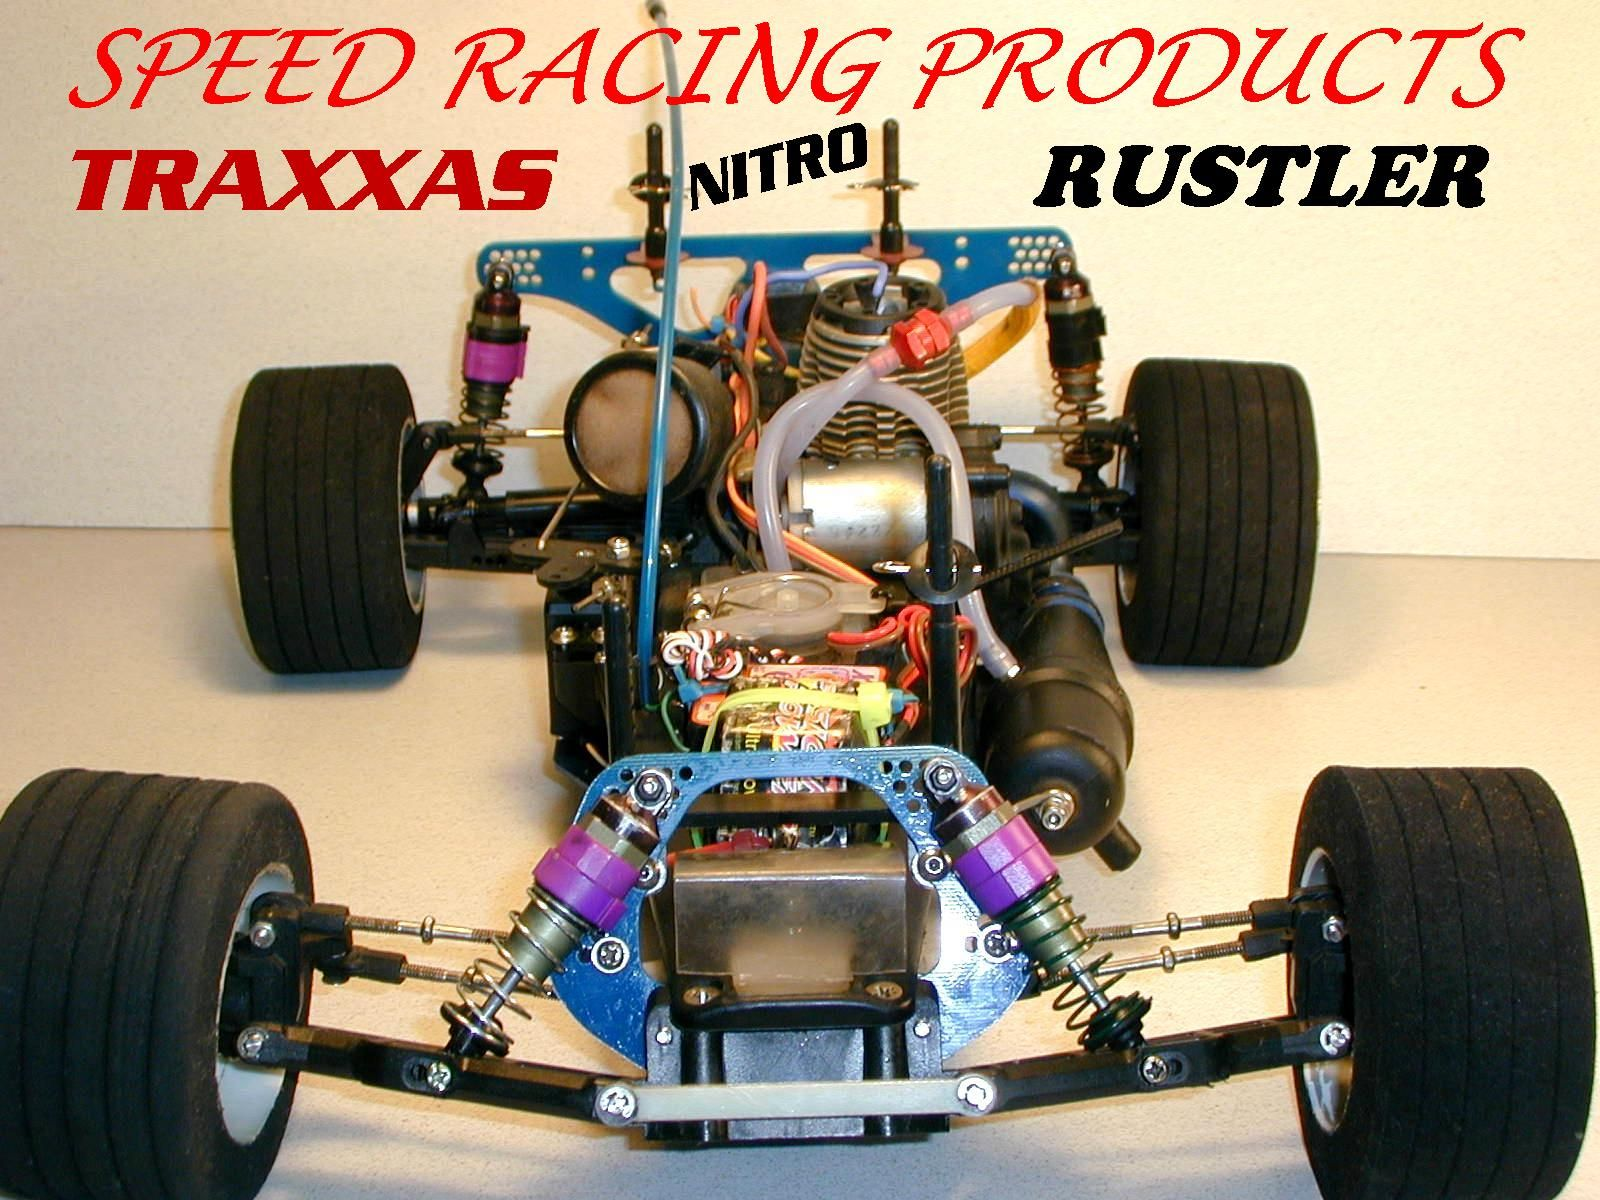 SpeedysRacingPart has the Traxxas Nitro Rustler conversion kit Speed control or Receiver mounting kit and PRM Front Bumper